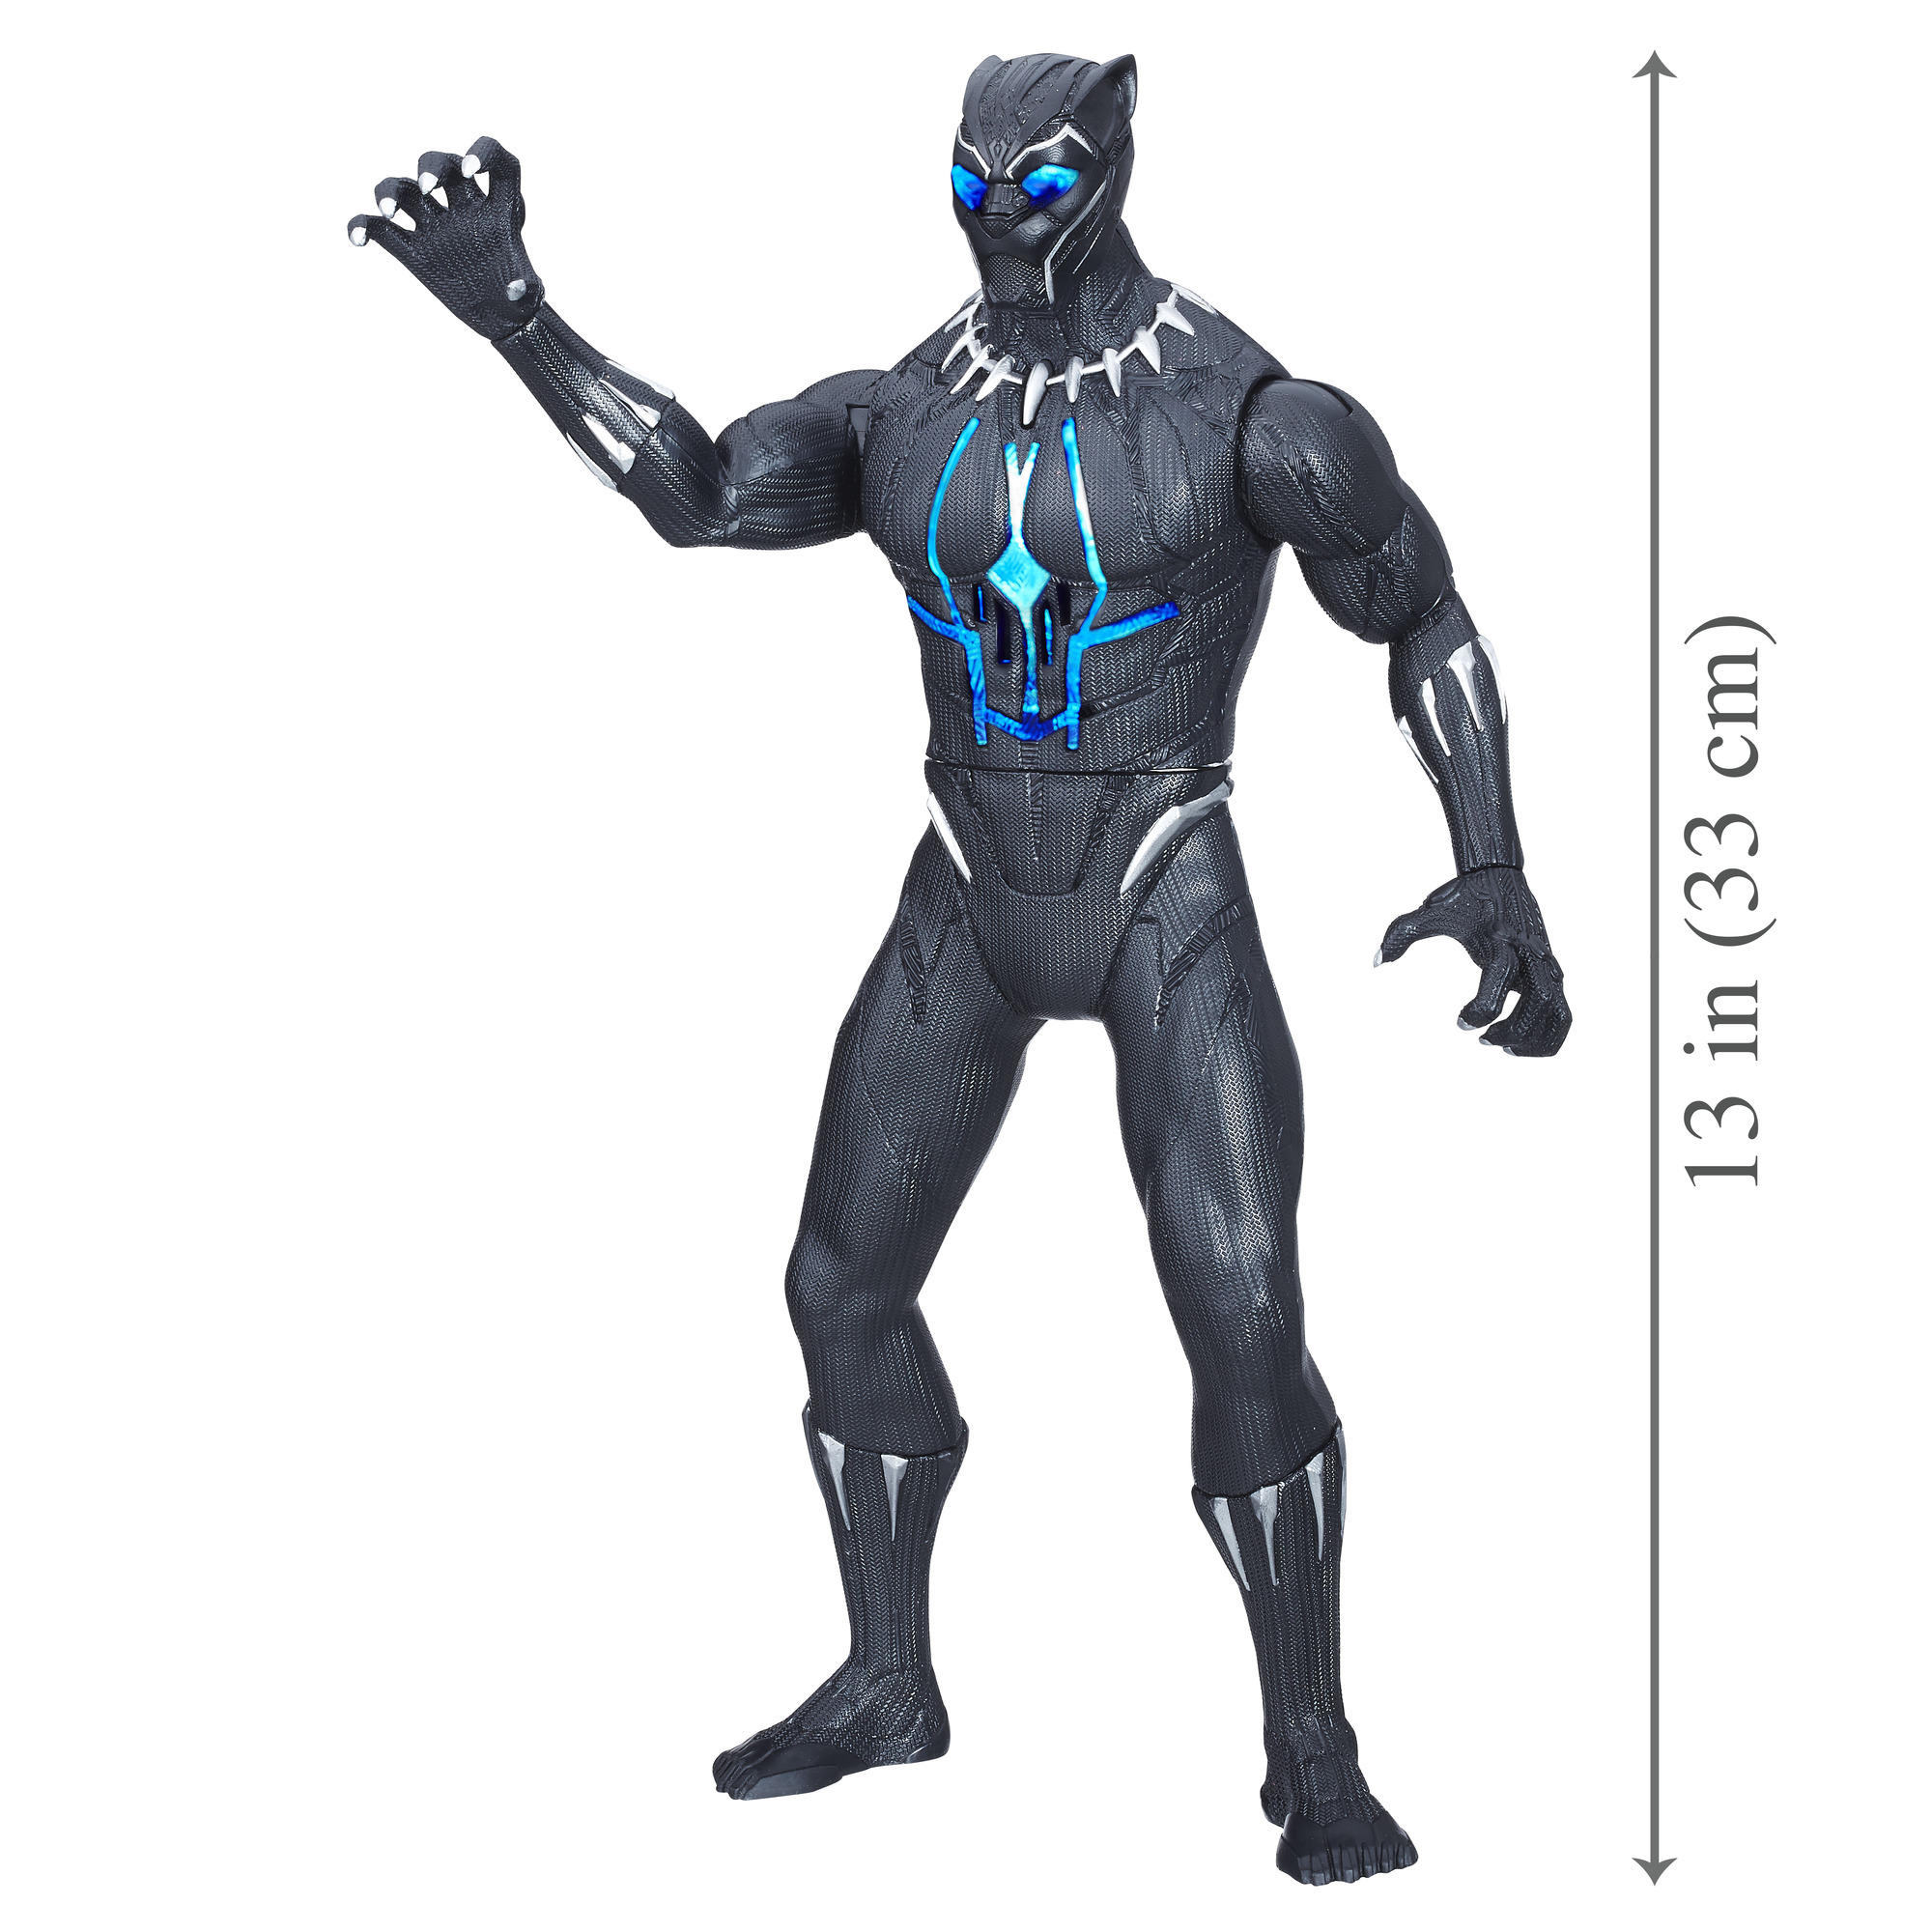 Toys Avengers Black Panther Slash Claw Marvel Movie Gifts for Kids Boys Girls 5+